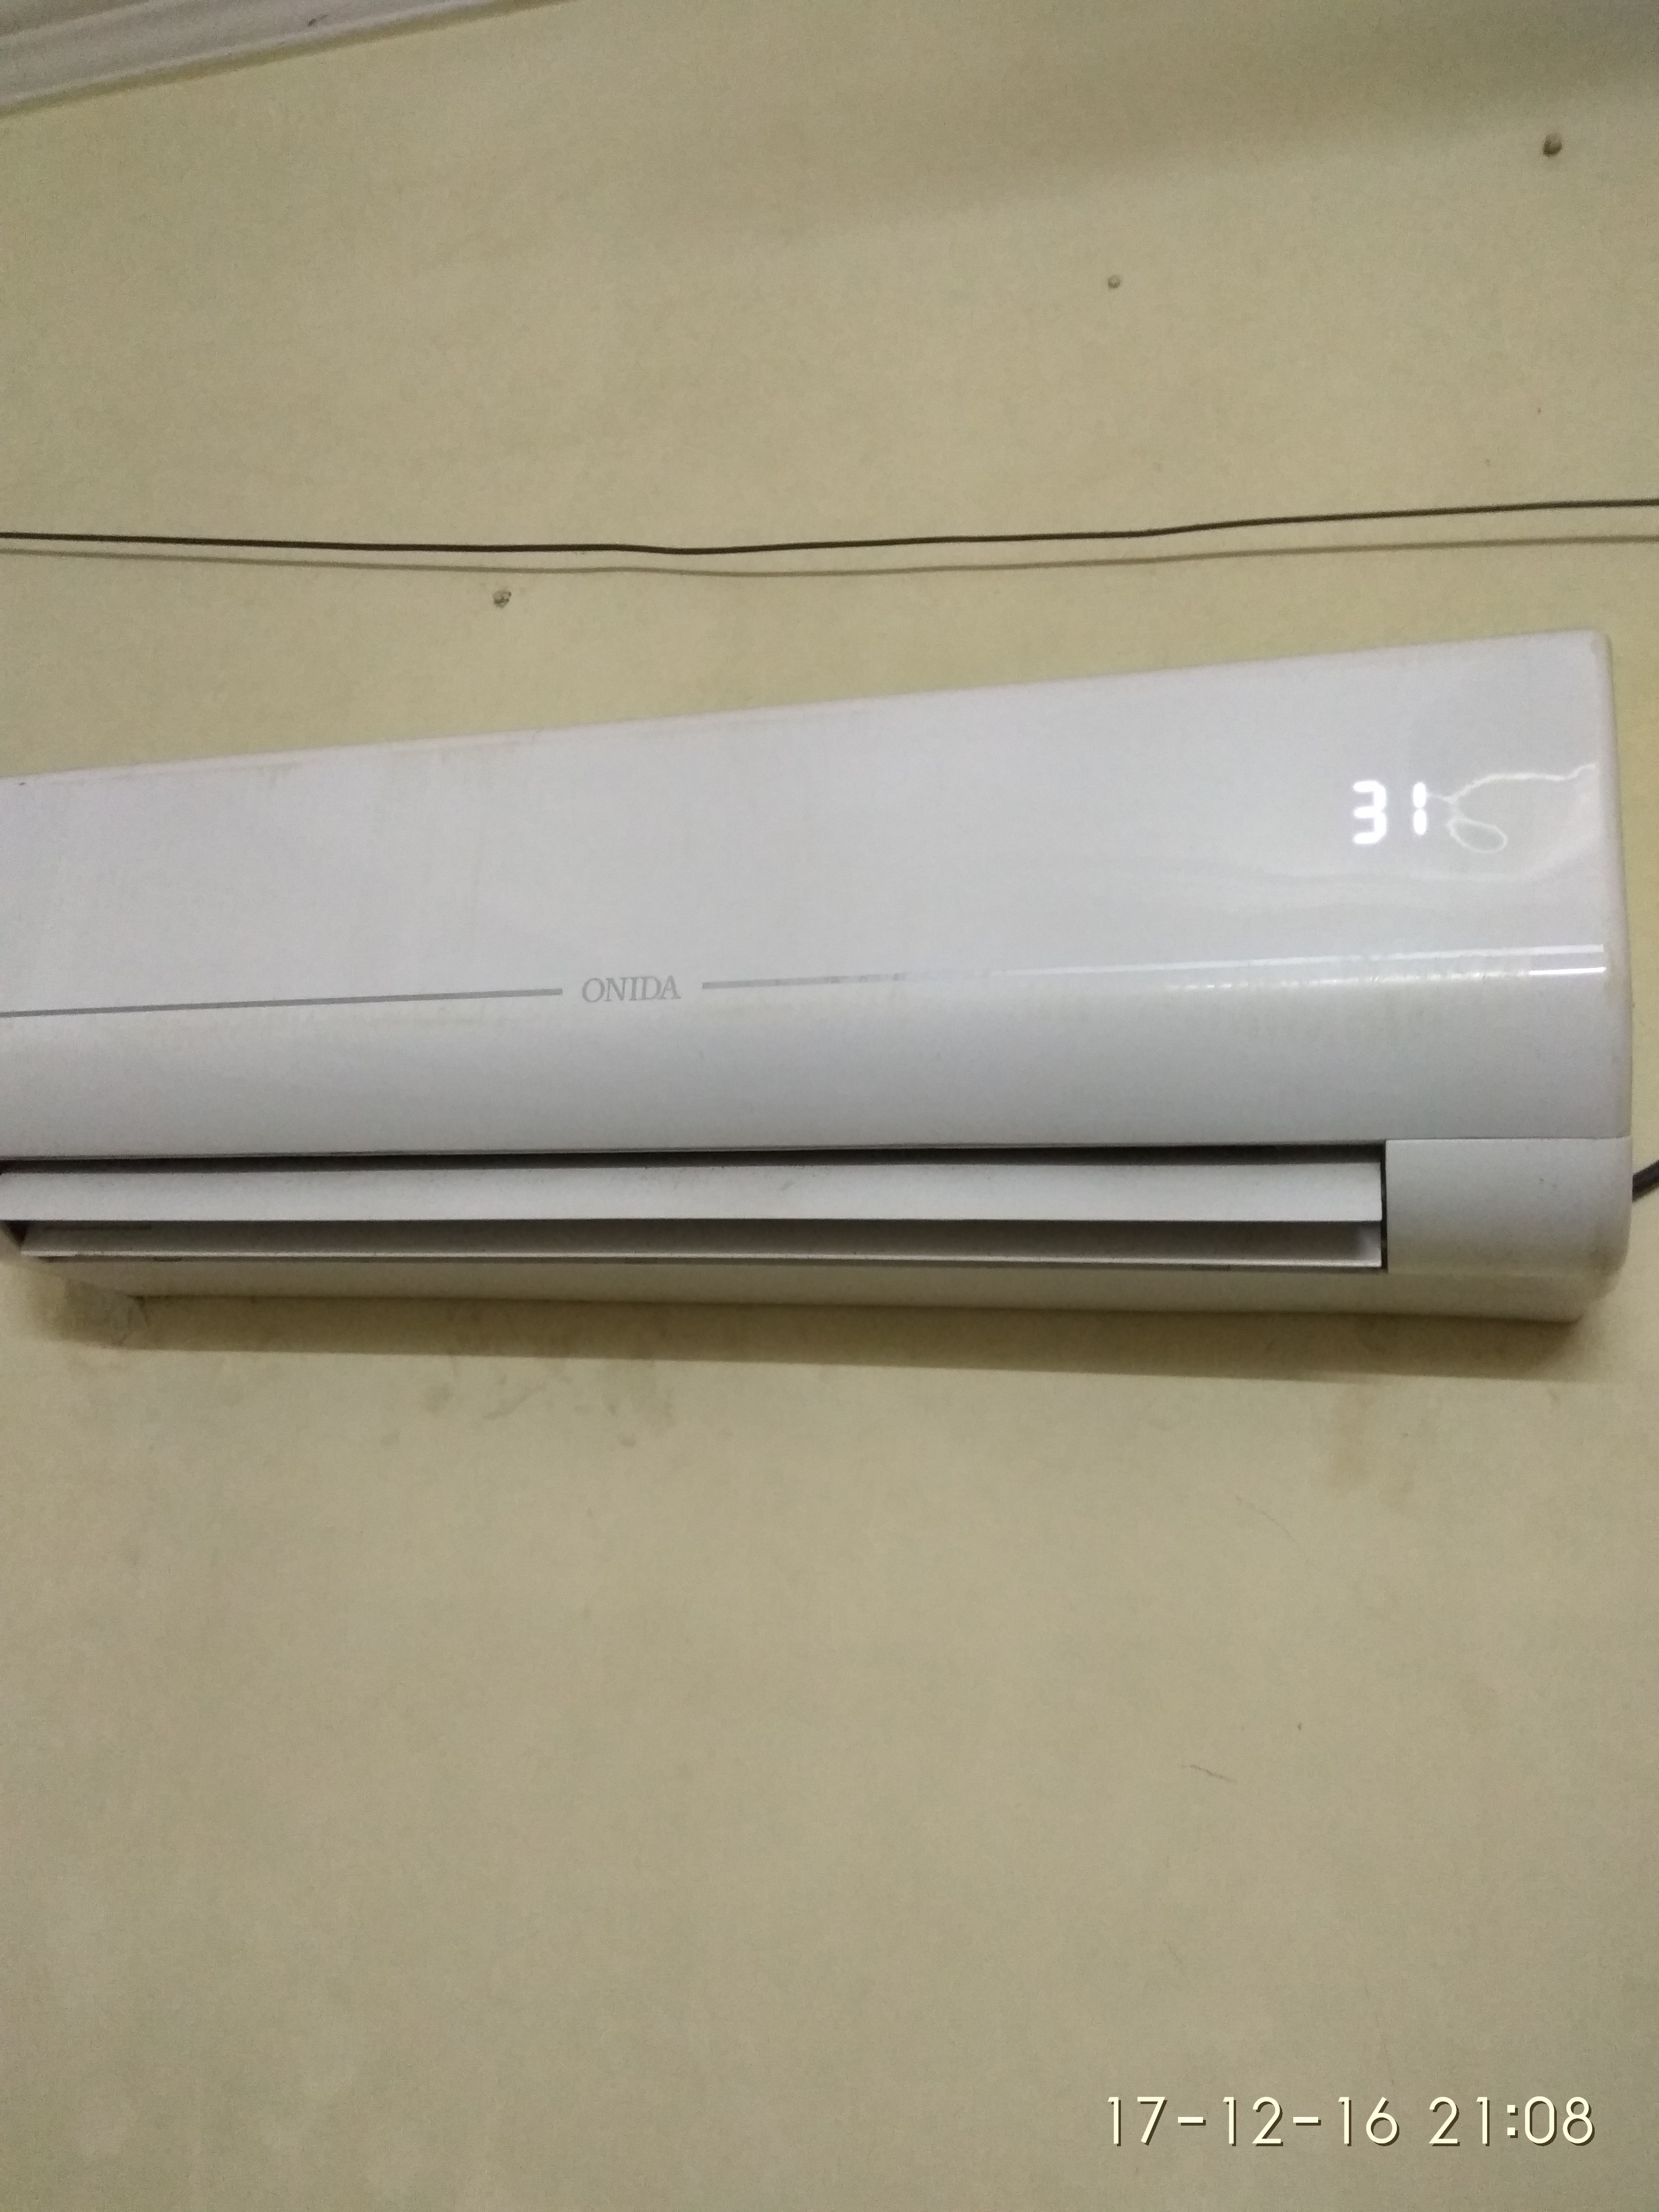 ONIDA SPLIT AC 1.5 TON Review Price Specifications Compare  #5B4F33